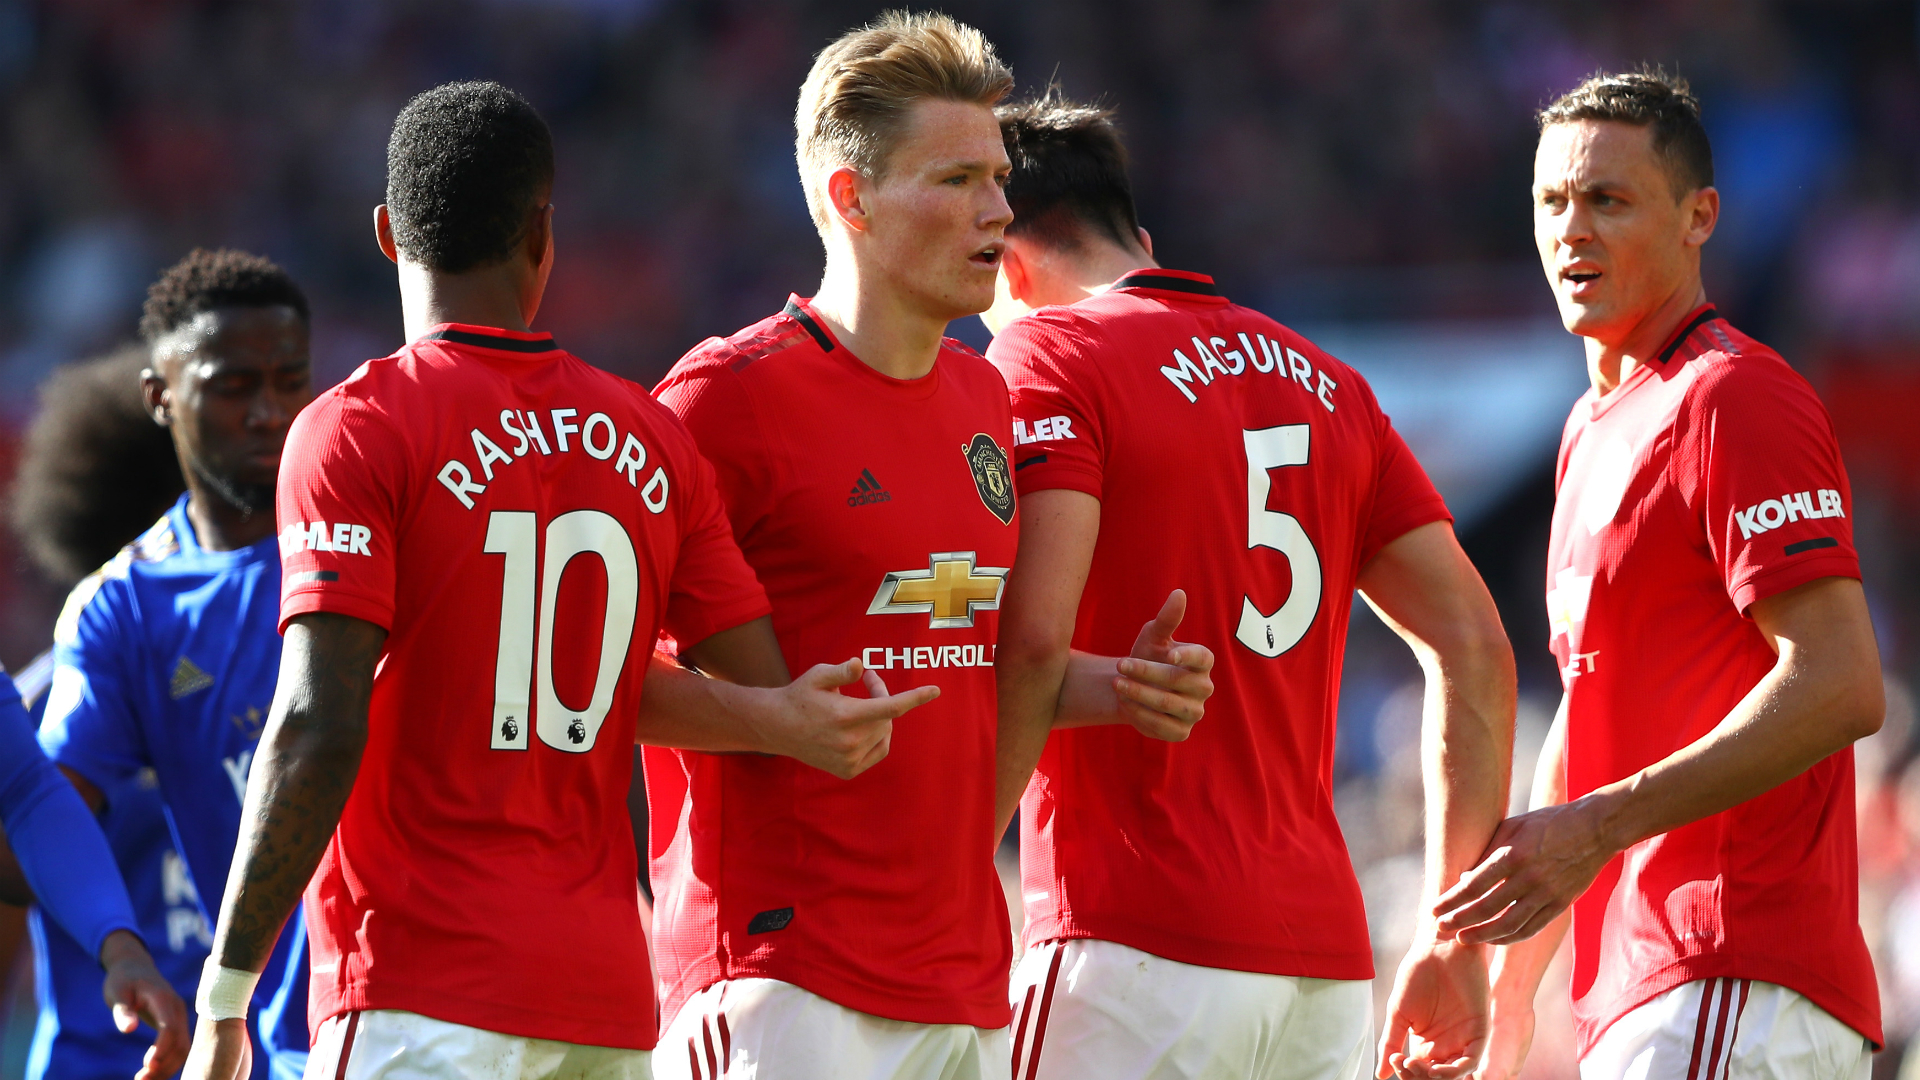 Solskjaer lauds 'leader' McTominay after battling win over Leicester